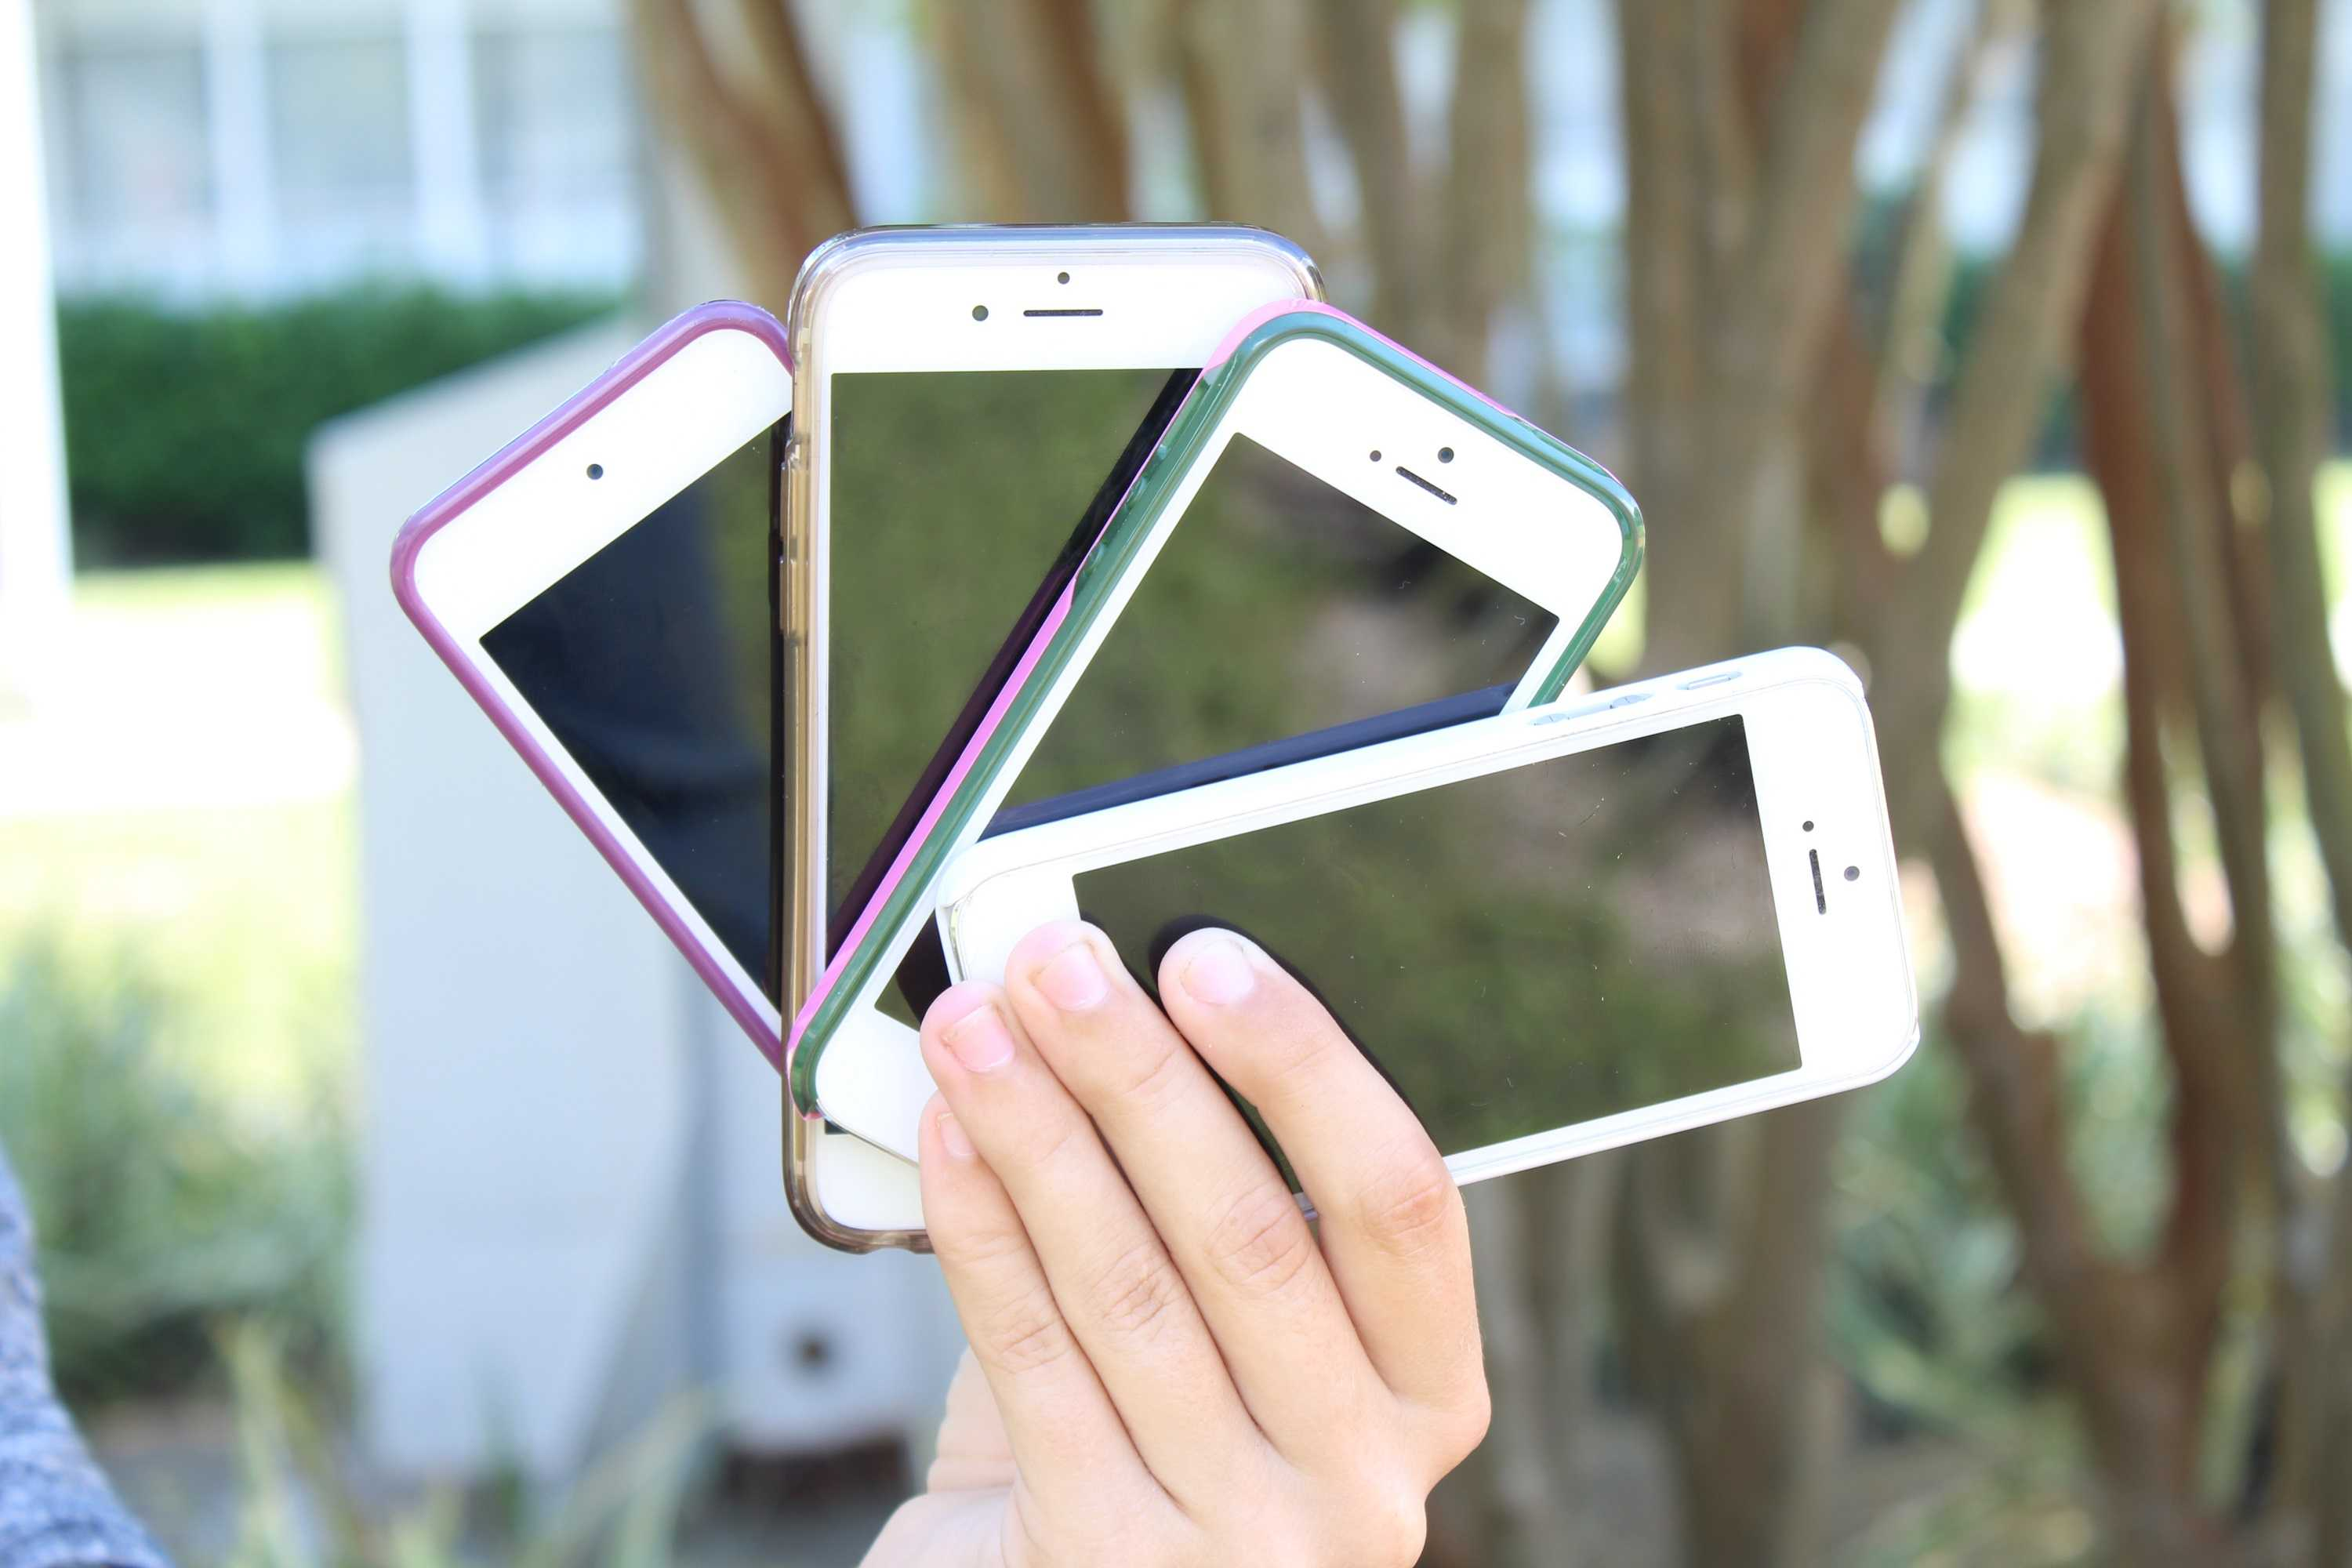 iPhones are a popular phone choice for students.